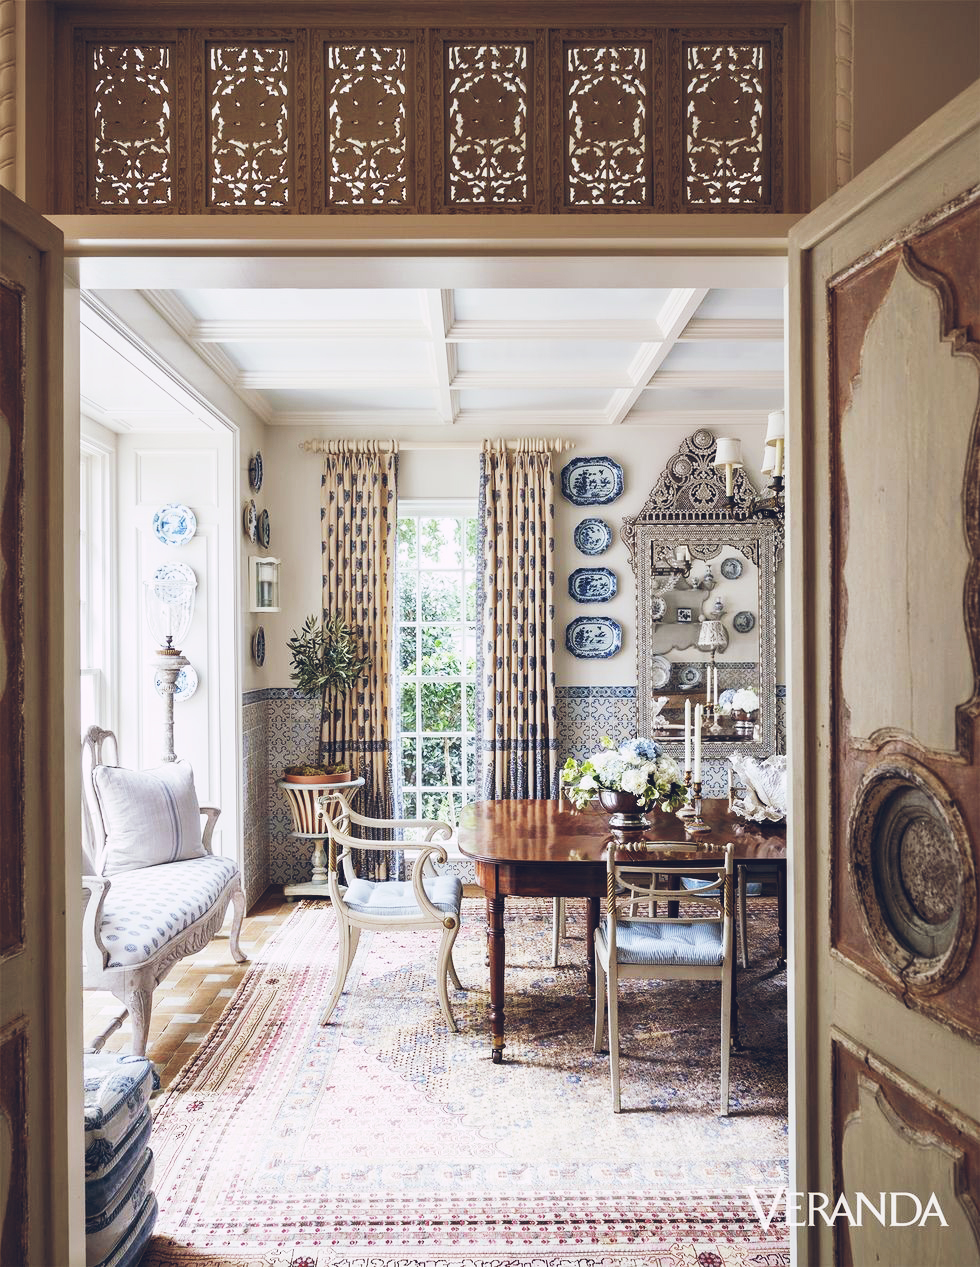 Design Inspiration : A Spanish Colonial in Dallas, Texas Designed by Cathy Kincaid